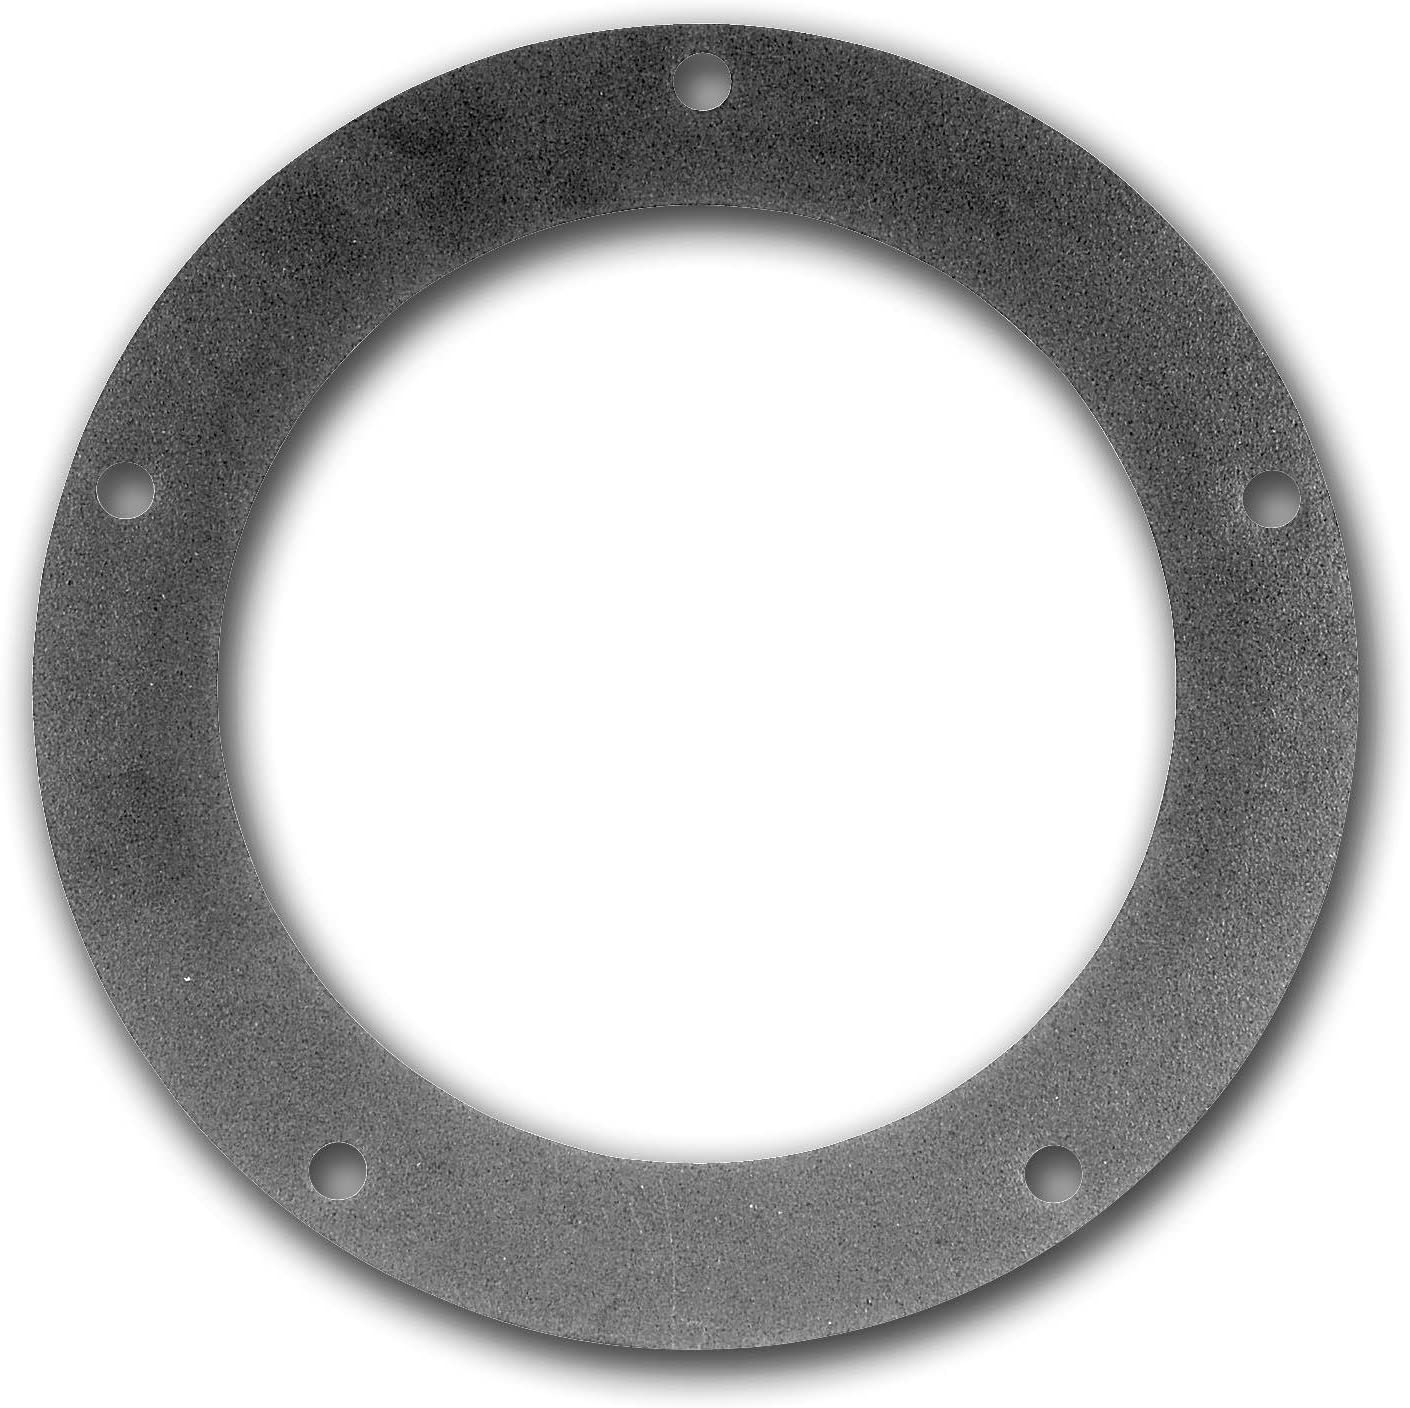 Primary Derby Cover 5-Hole Gasket,for Harley Davidson,by V-Twin